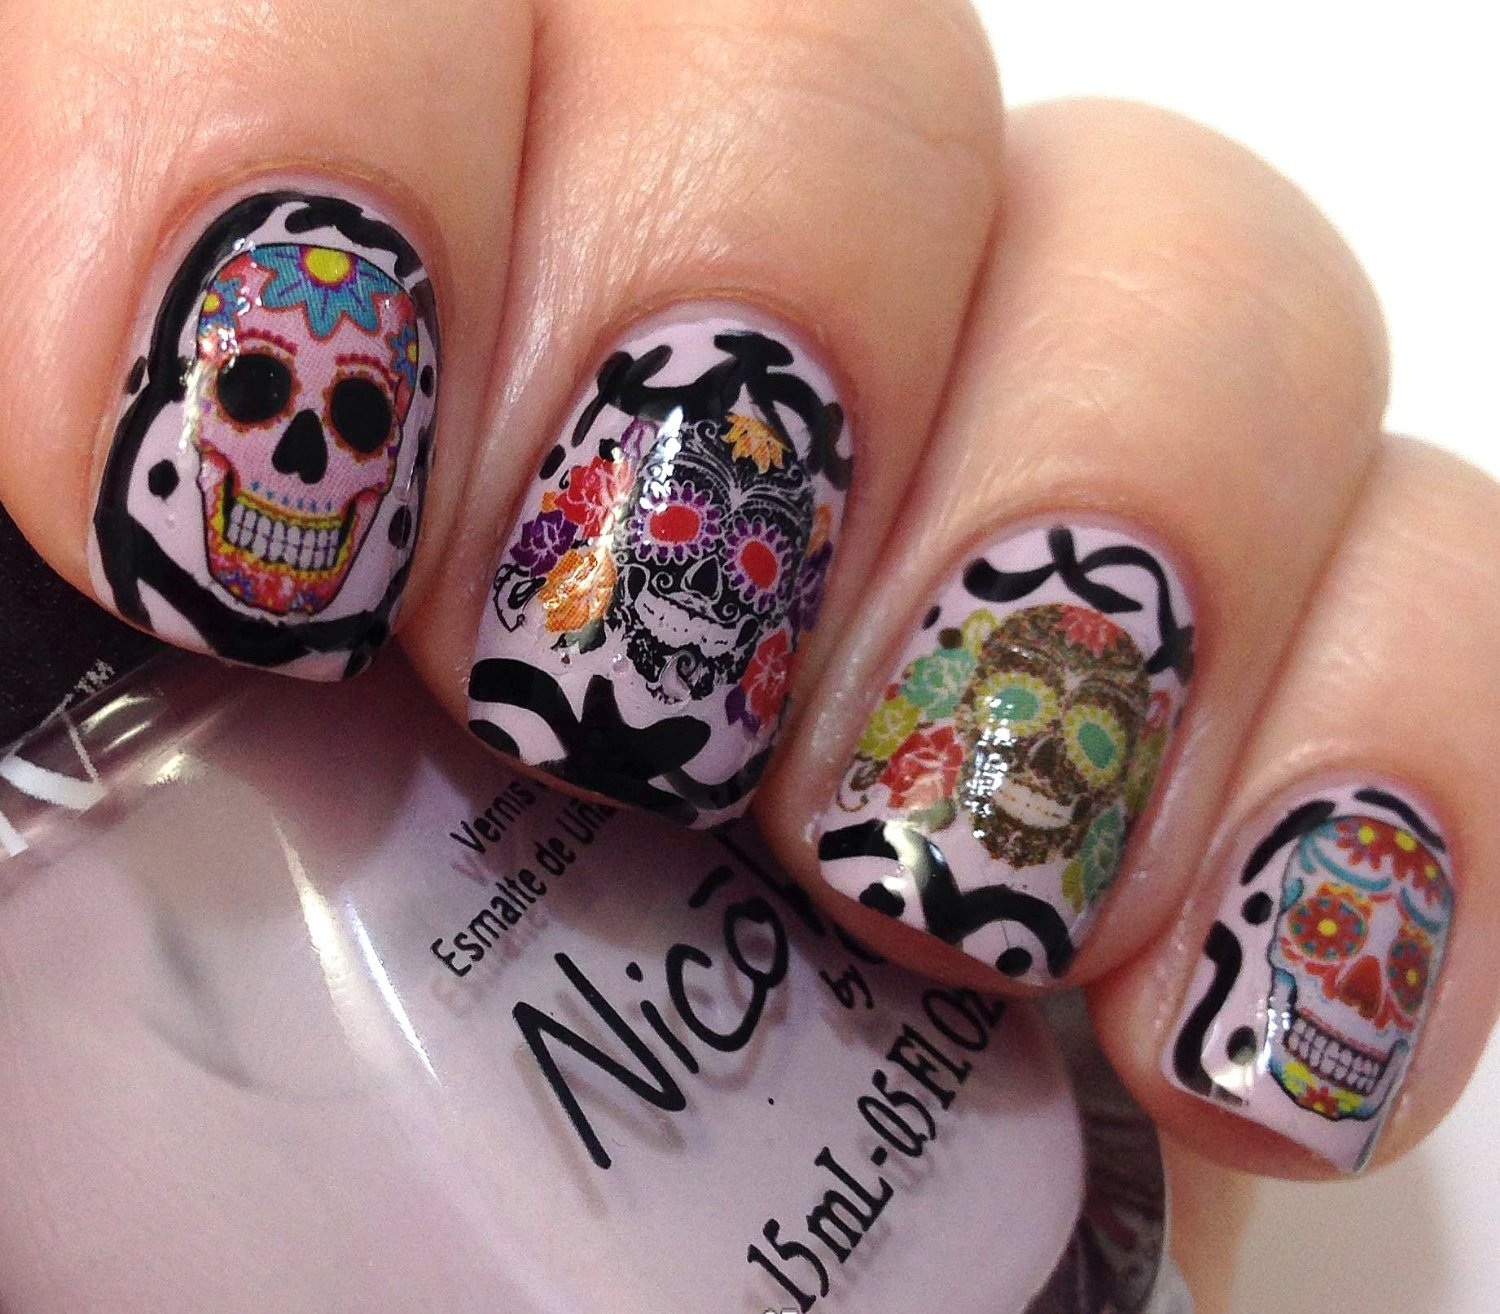 Amazon.com: Sugar Skull Nail Art Day of the Dead Decals Assortment #2 -  Featured in Rachael Ray Magazine October 2014!: Beauty - Amazon.com: Sugar Skull Nail Art Day Of The Dead Decals Assortment